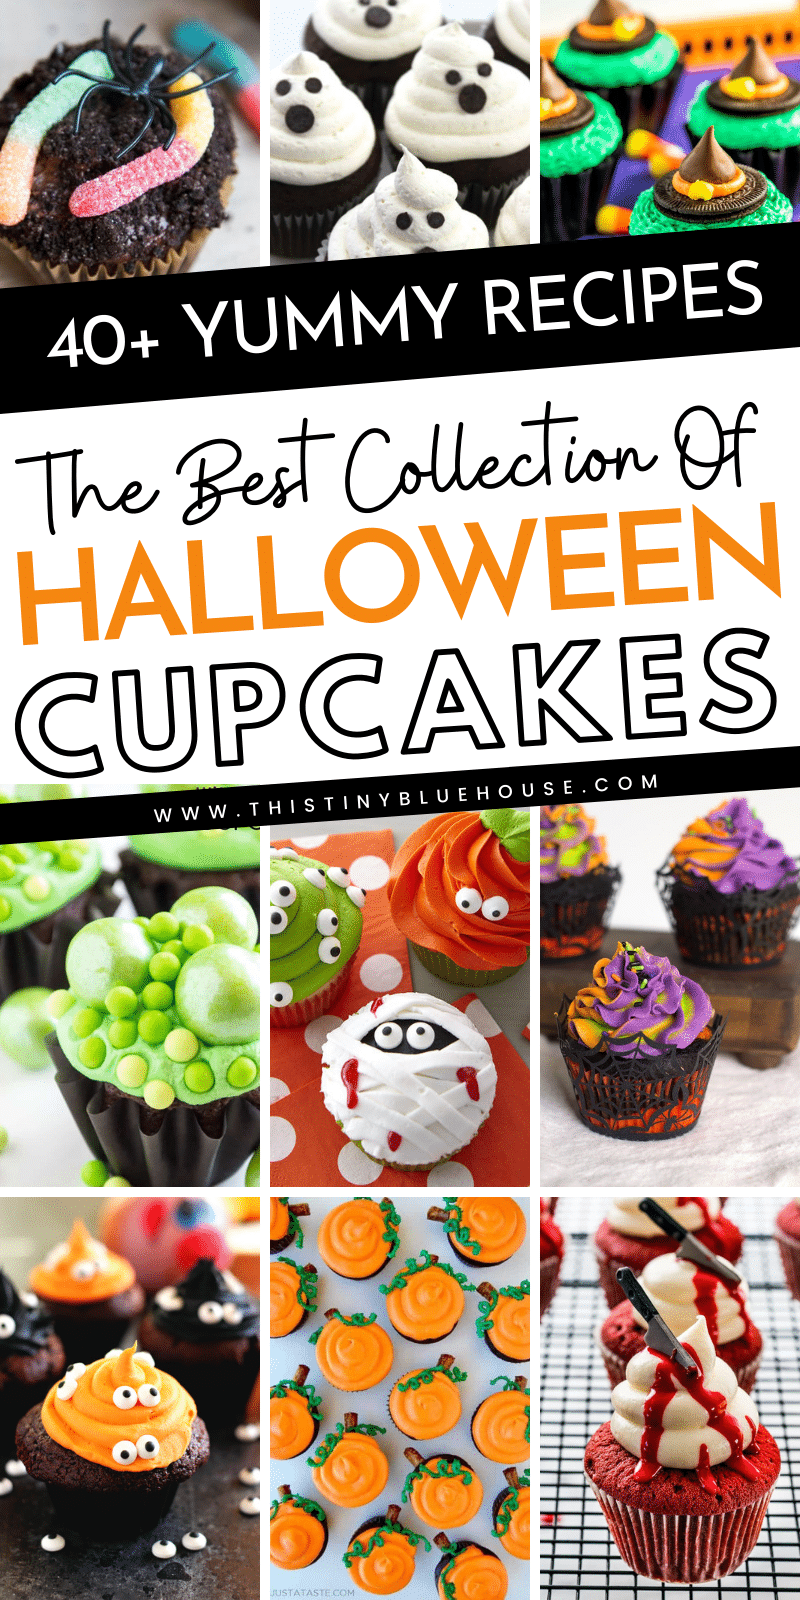 40+ Super cute spooktacular Halloween cupcakes to make this Halloween extra delicious. Super easy, super spooky these Halloween cupcakes are a must try. #halloweenfoods #halloweenfoodideas #halloweencupcakes #halloweenpotluckrecipes #halloweensweettreats #easyhalloweenpartyfoods